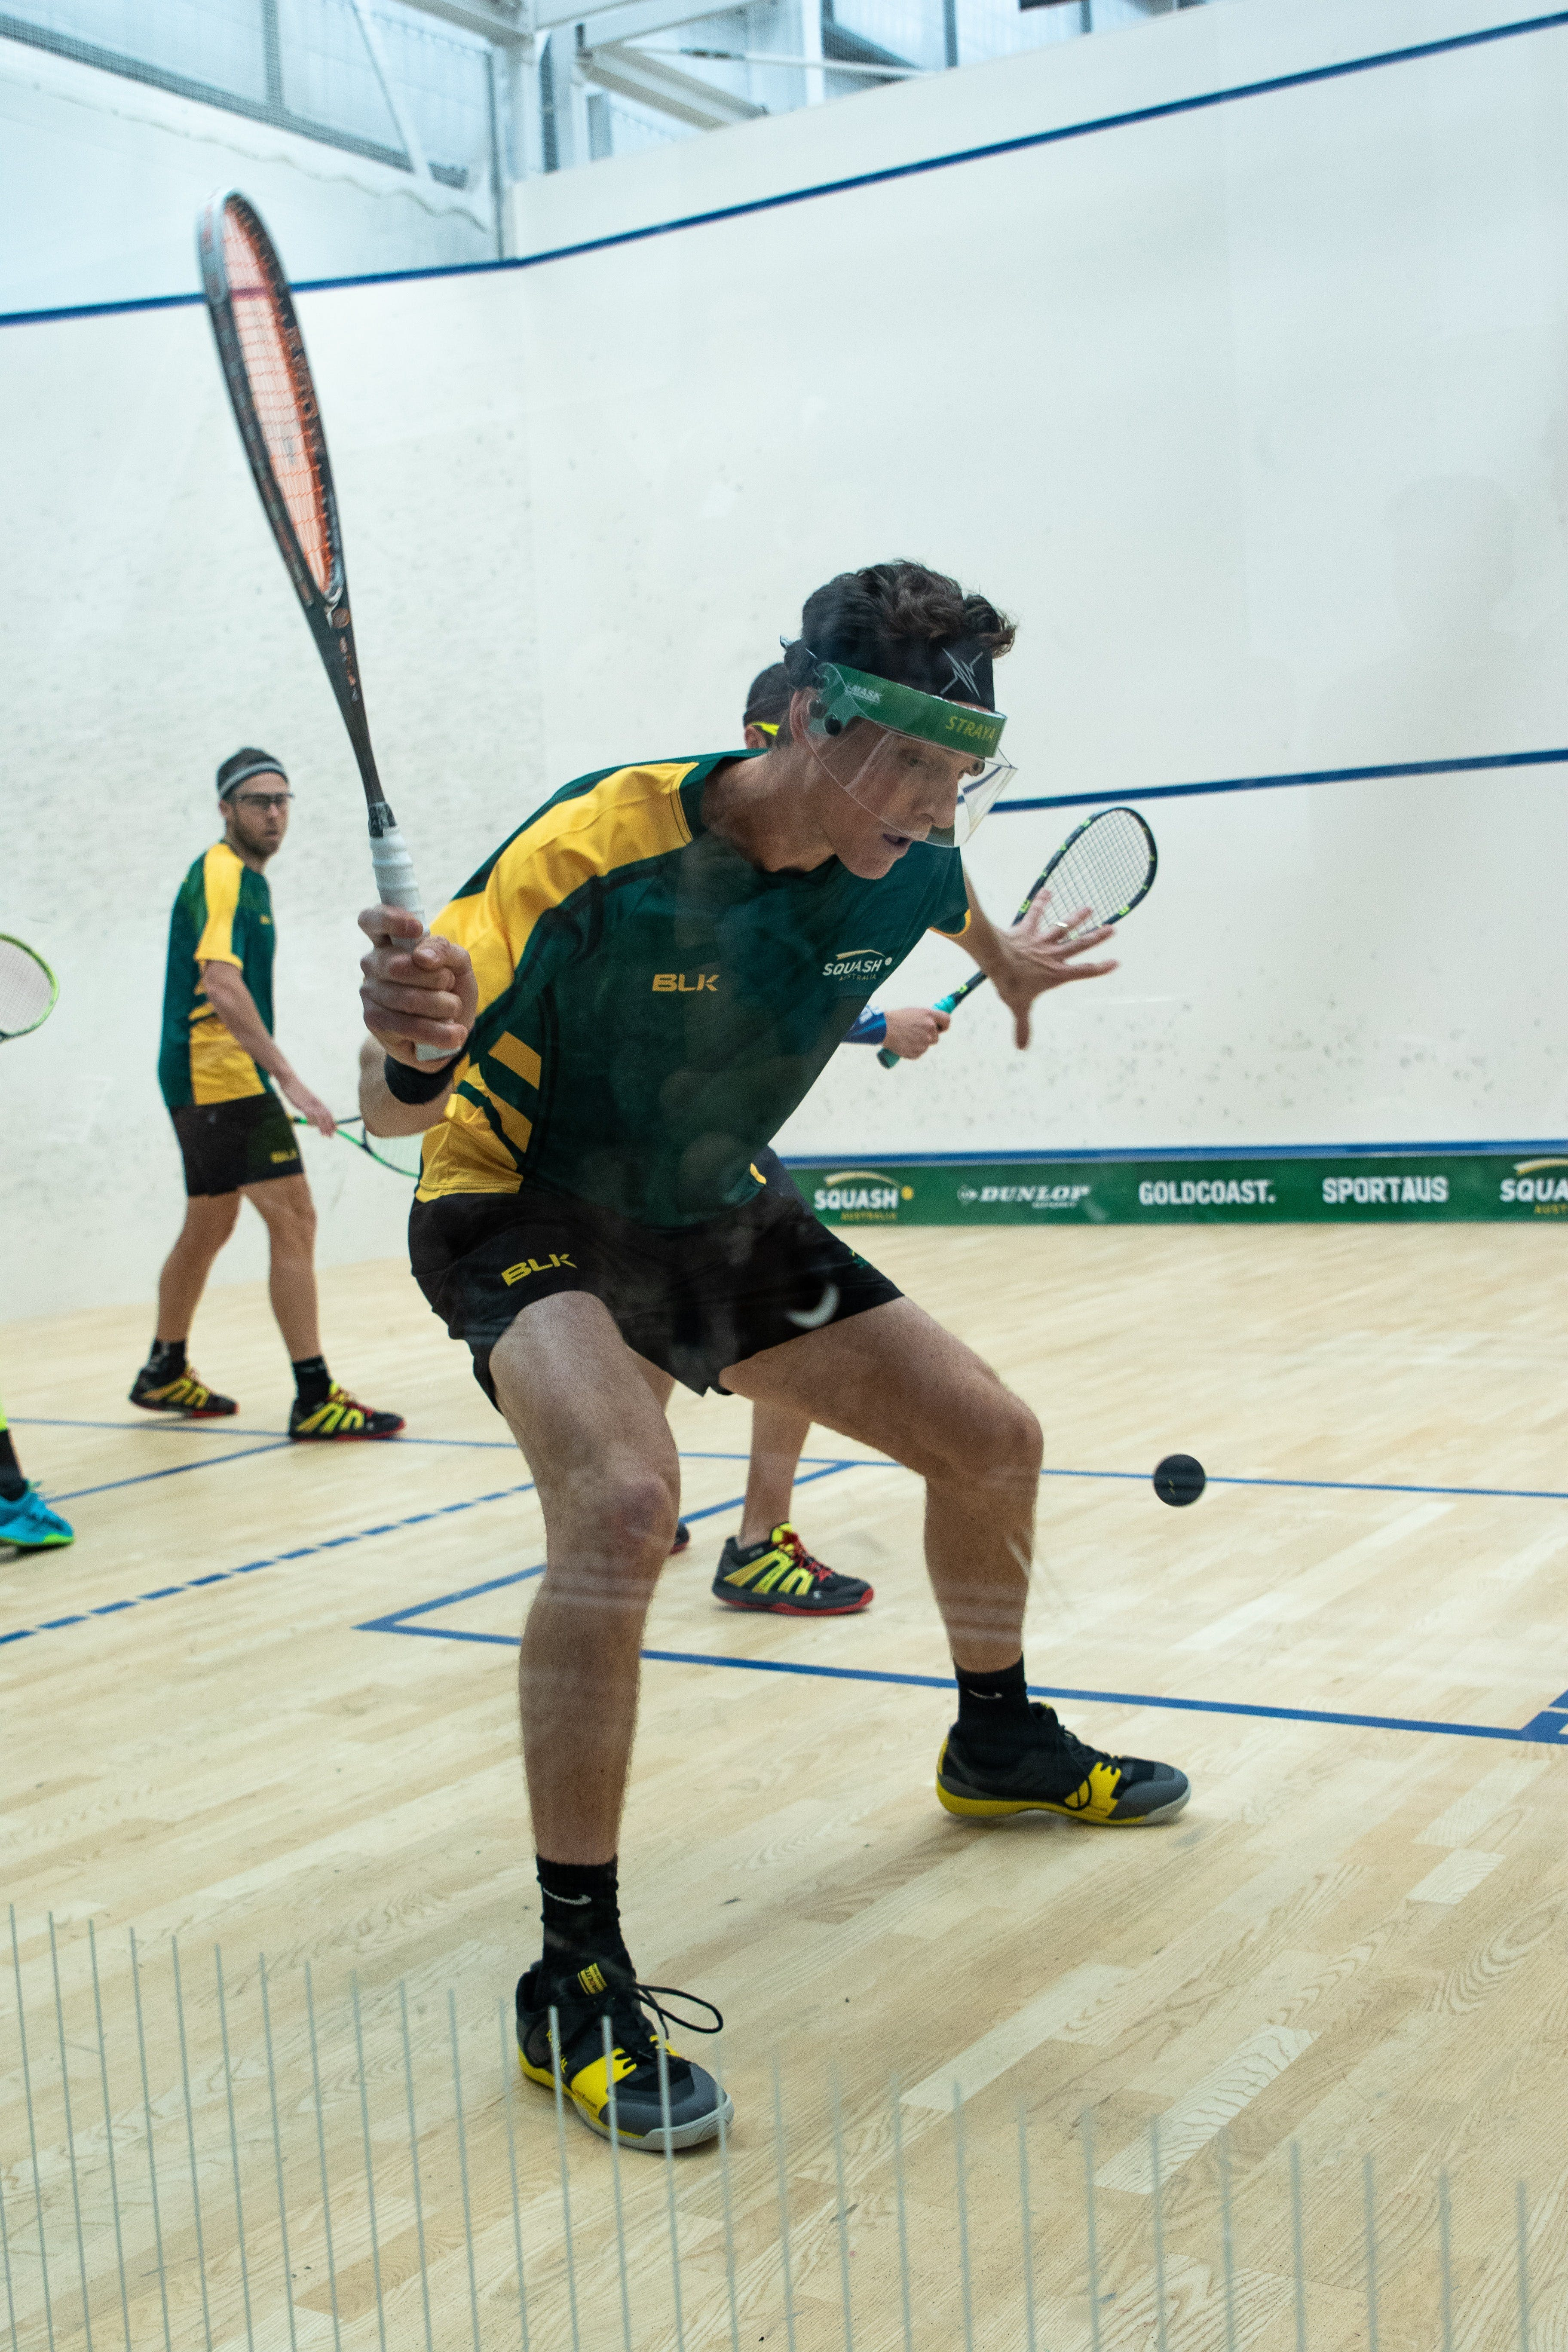 WSF World Junior Squash Championships 2020 - Gold Coast - Pubs and Clubs